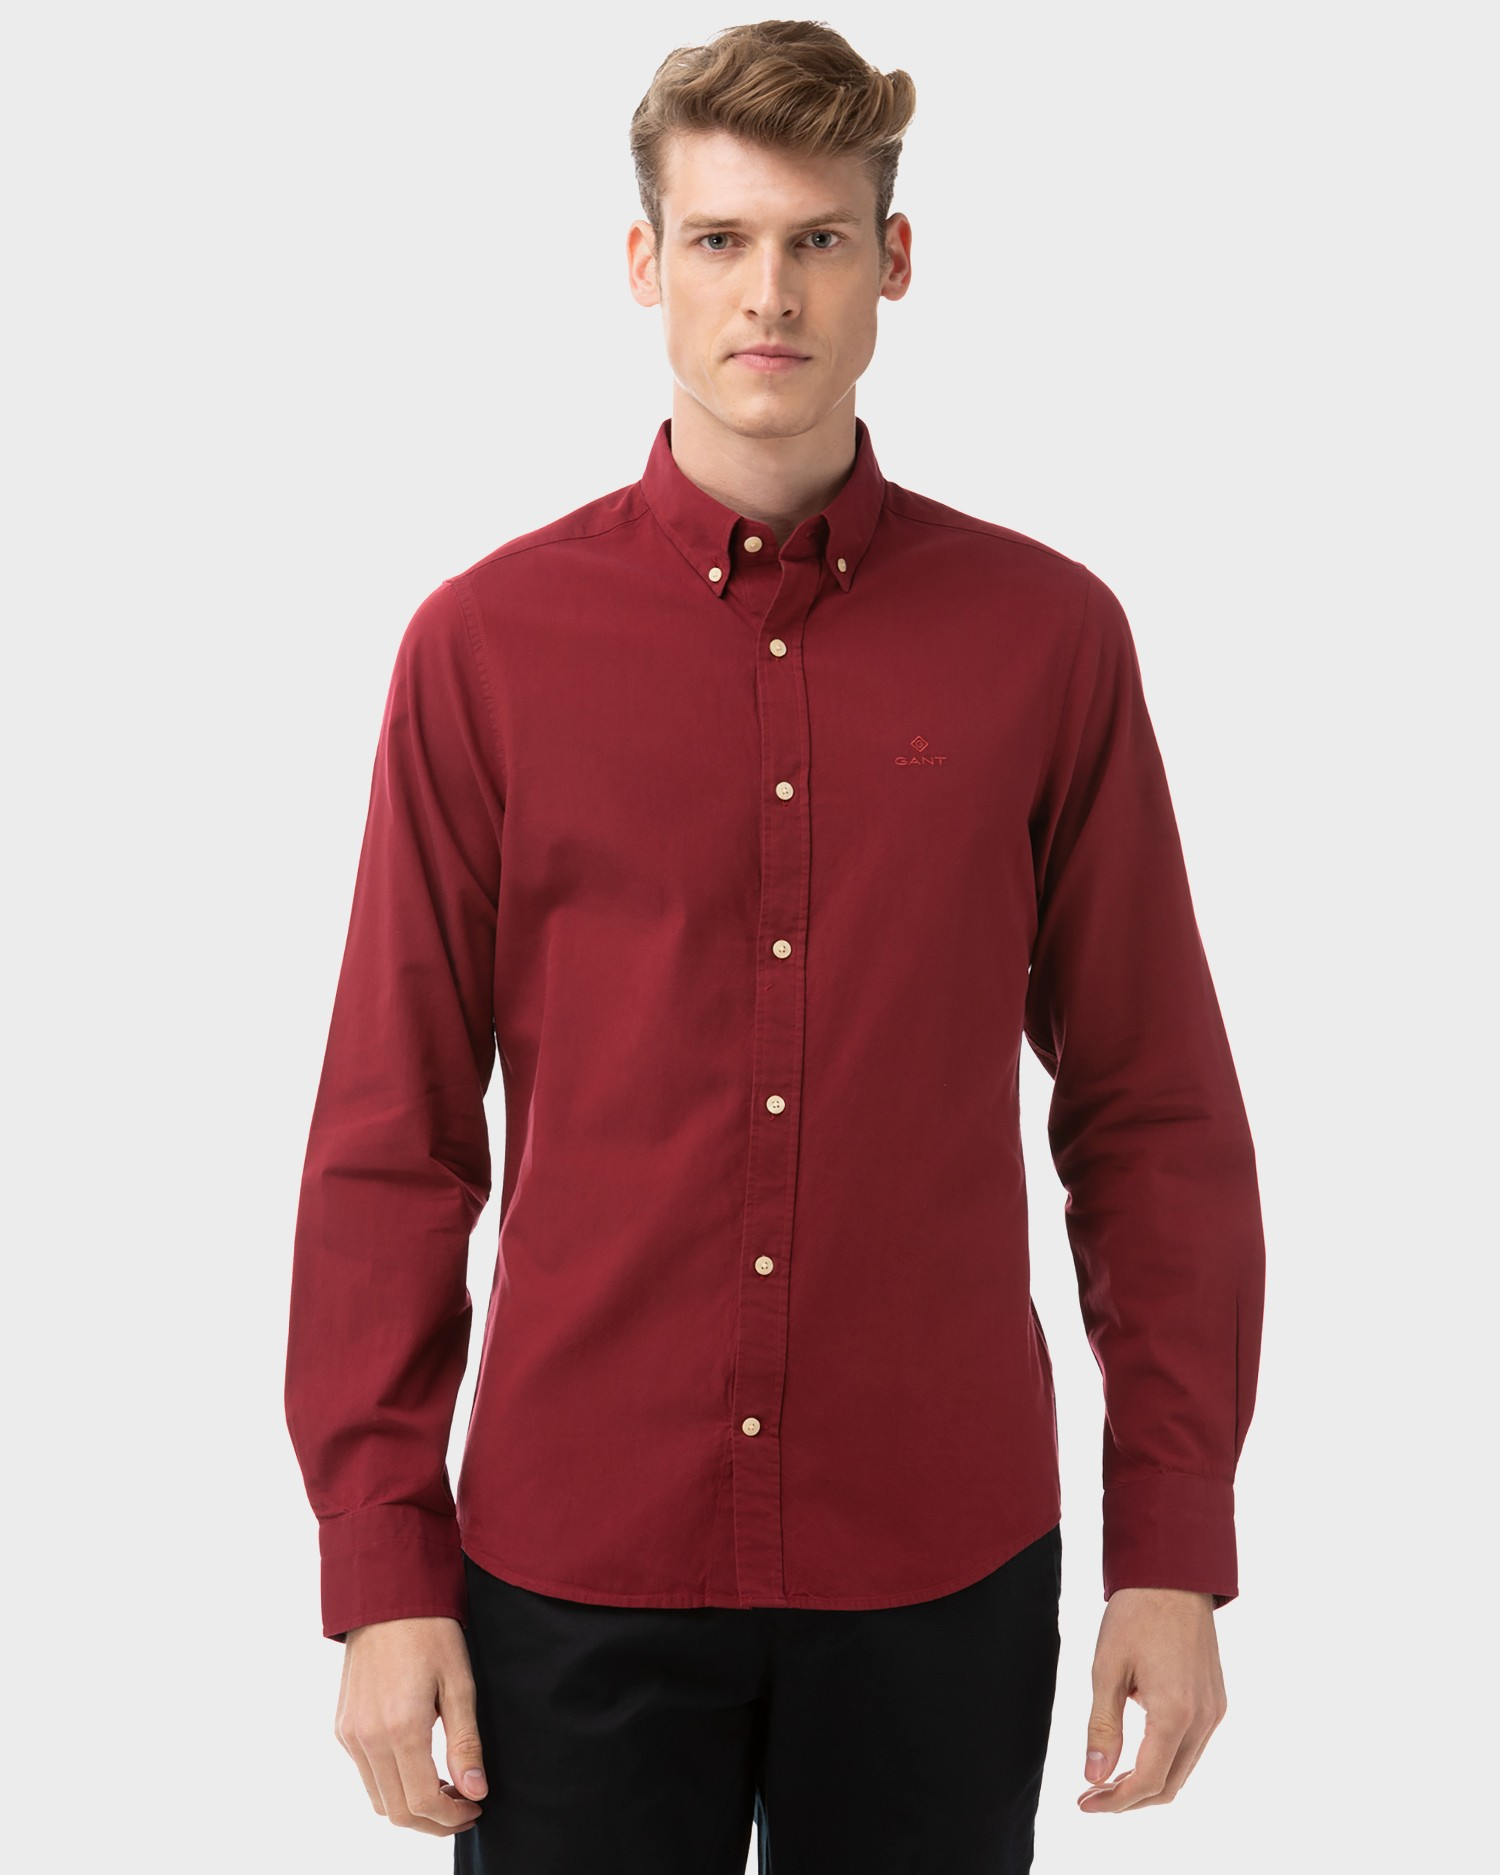 GANT Men's Winter Twill Solid Slim Fit Shirt - 3021432